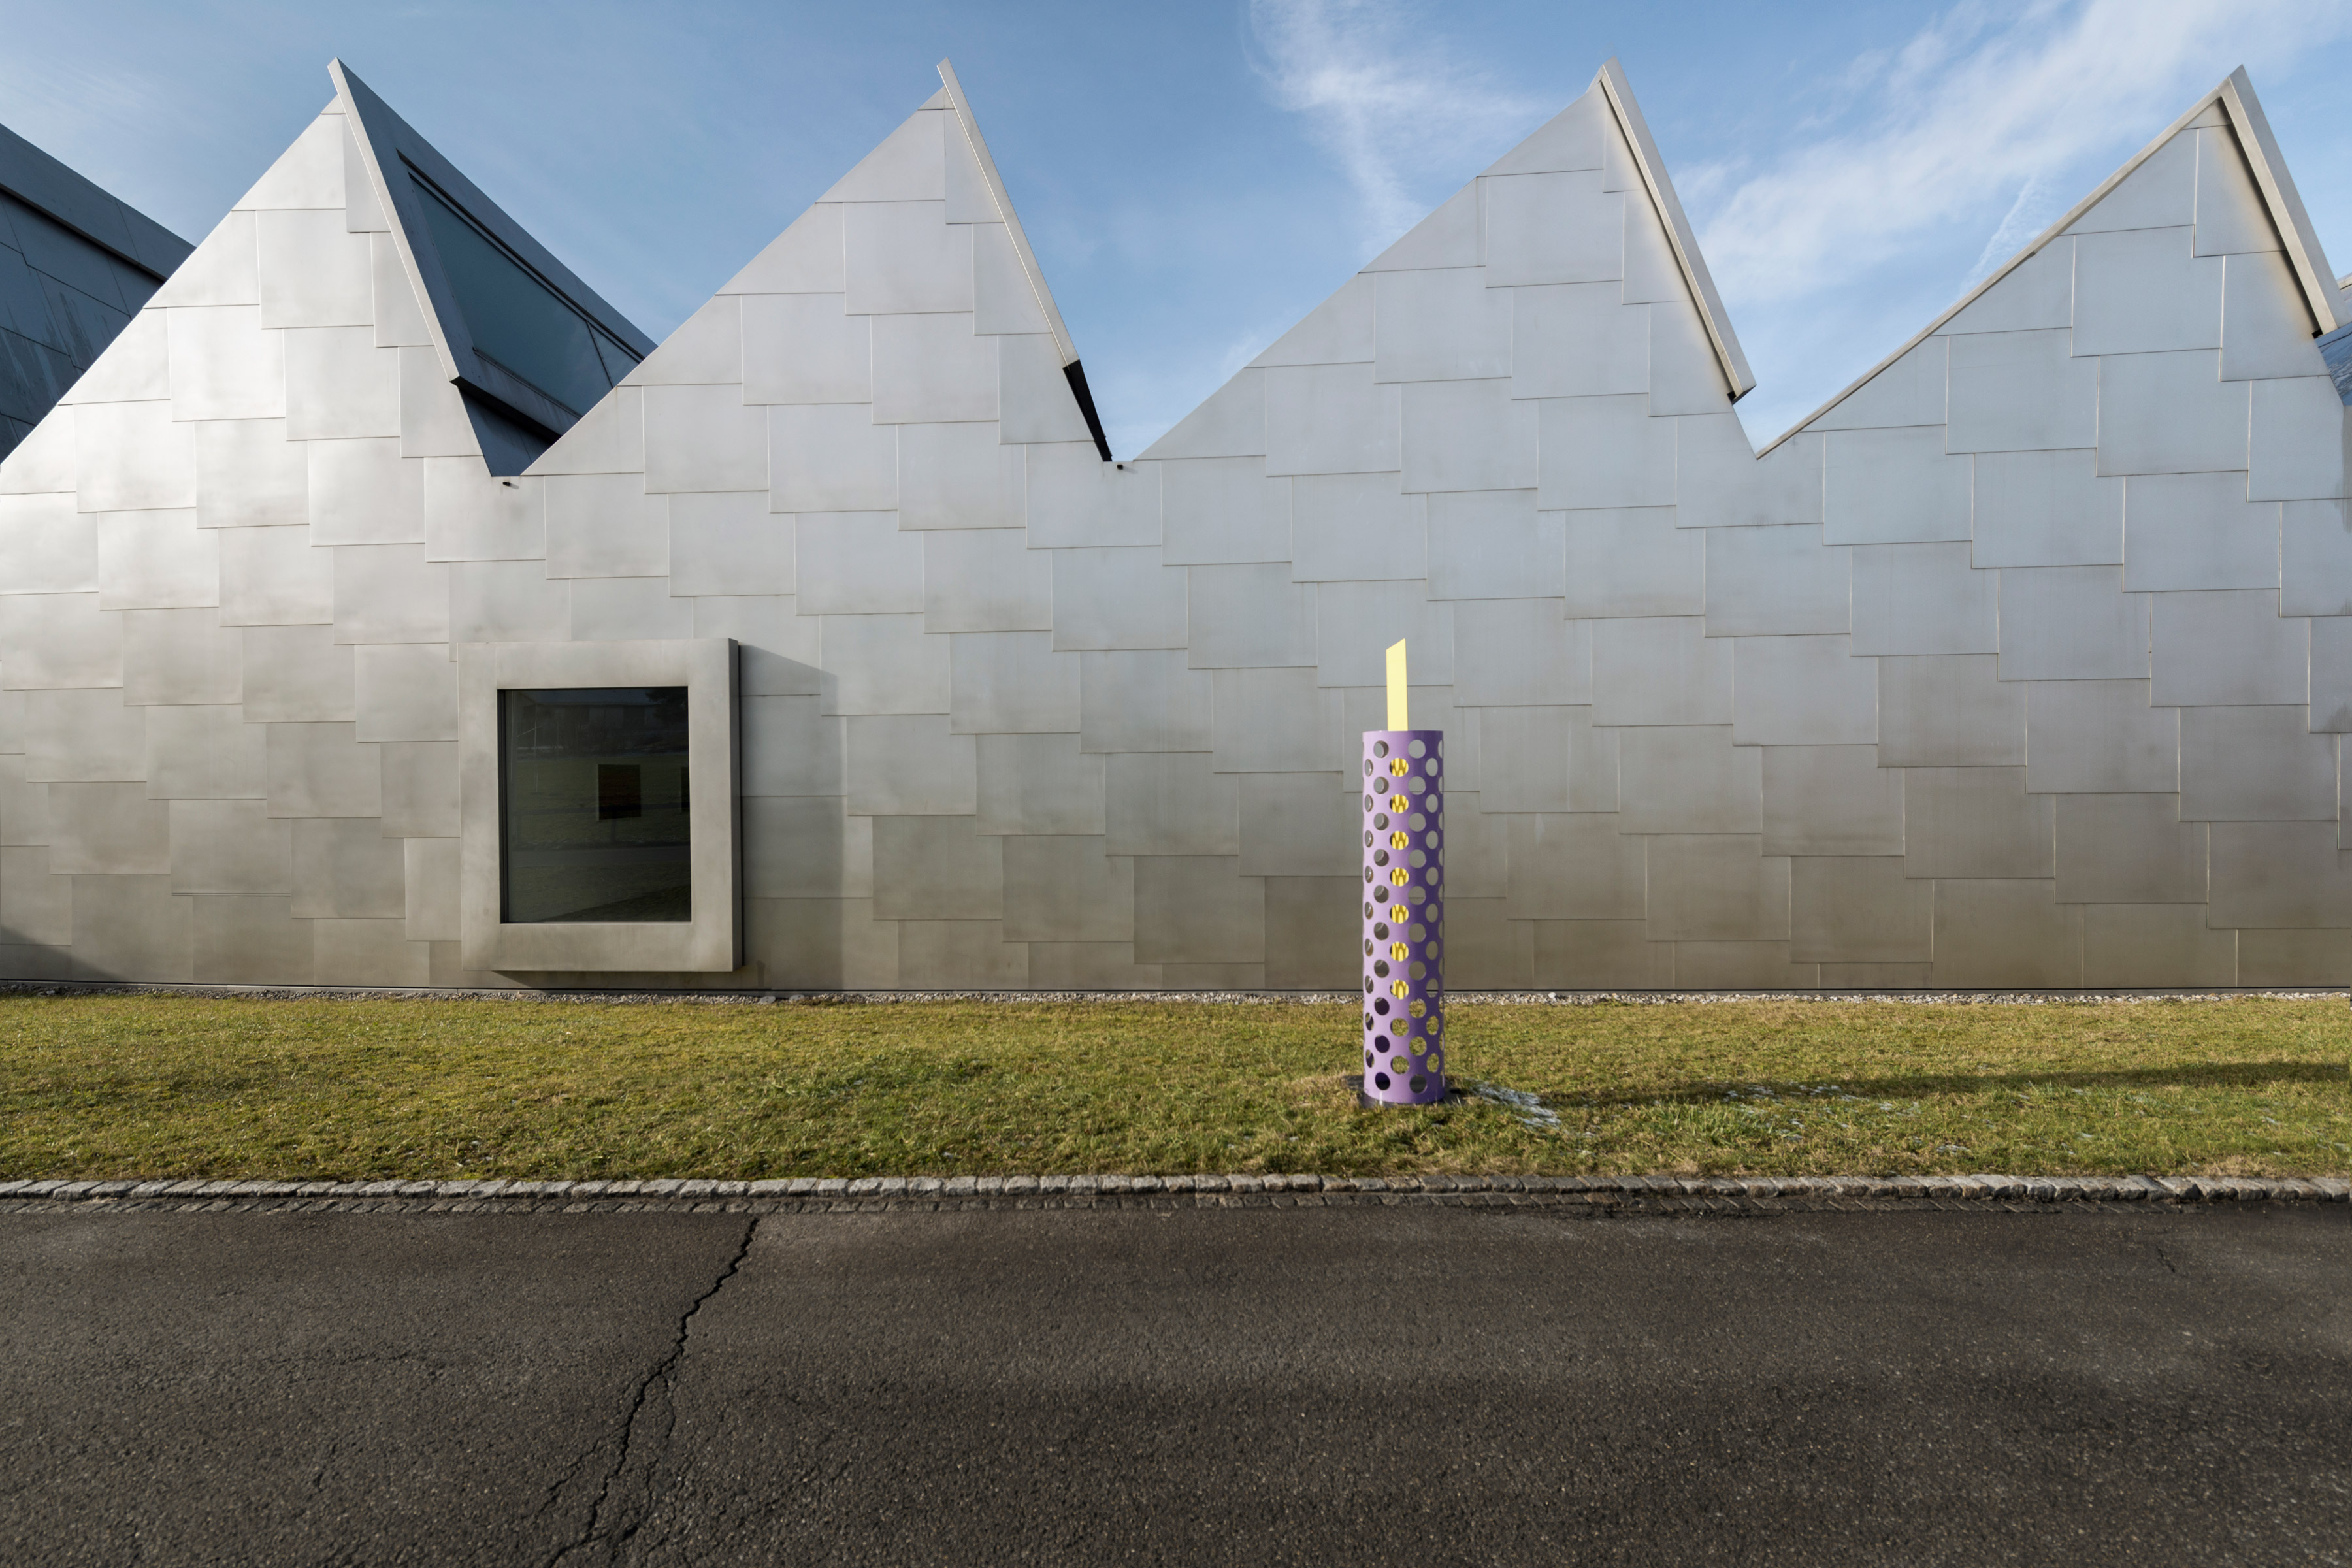 Architecture photo about Kunstmuseum Appenzell art museum